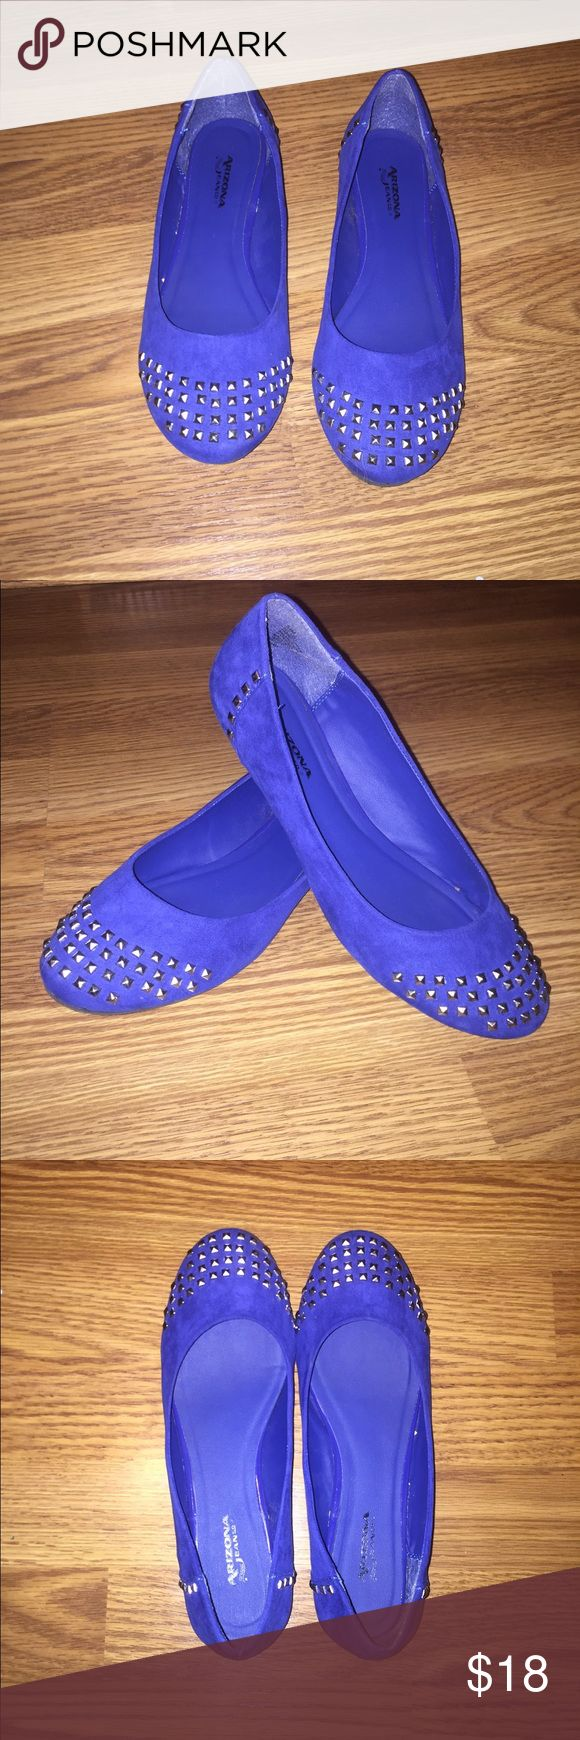 Royal blue Arizona jeans company flats Royal blue flats with silver rhinestones at the toes. They may look purple in the photos but they are blue! As you can see from the picture these shoes were not worn many times and there is no wear on the insoles! Size 8.5 fit more like a 7.5-8. Arizona Jean Company Shoes Flats & Loafers